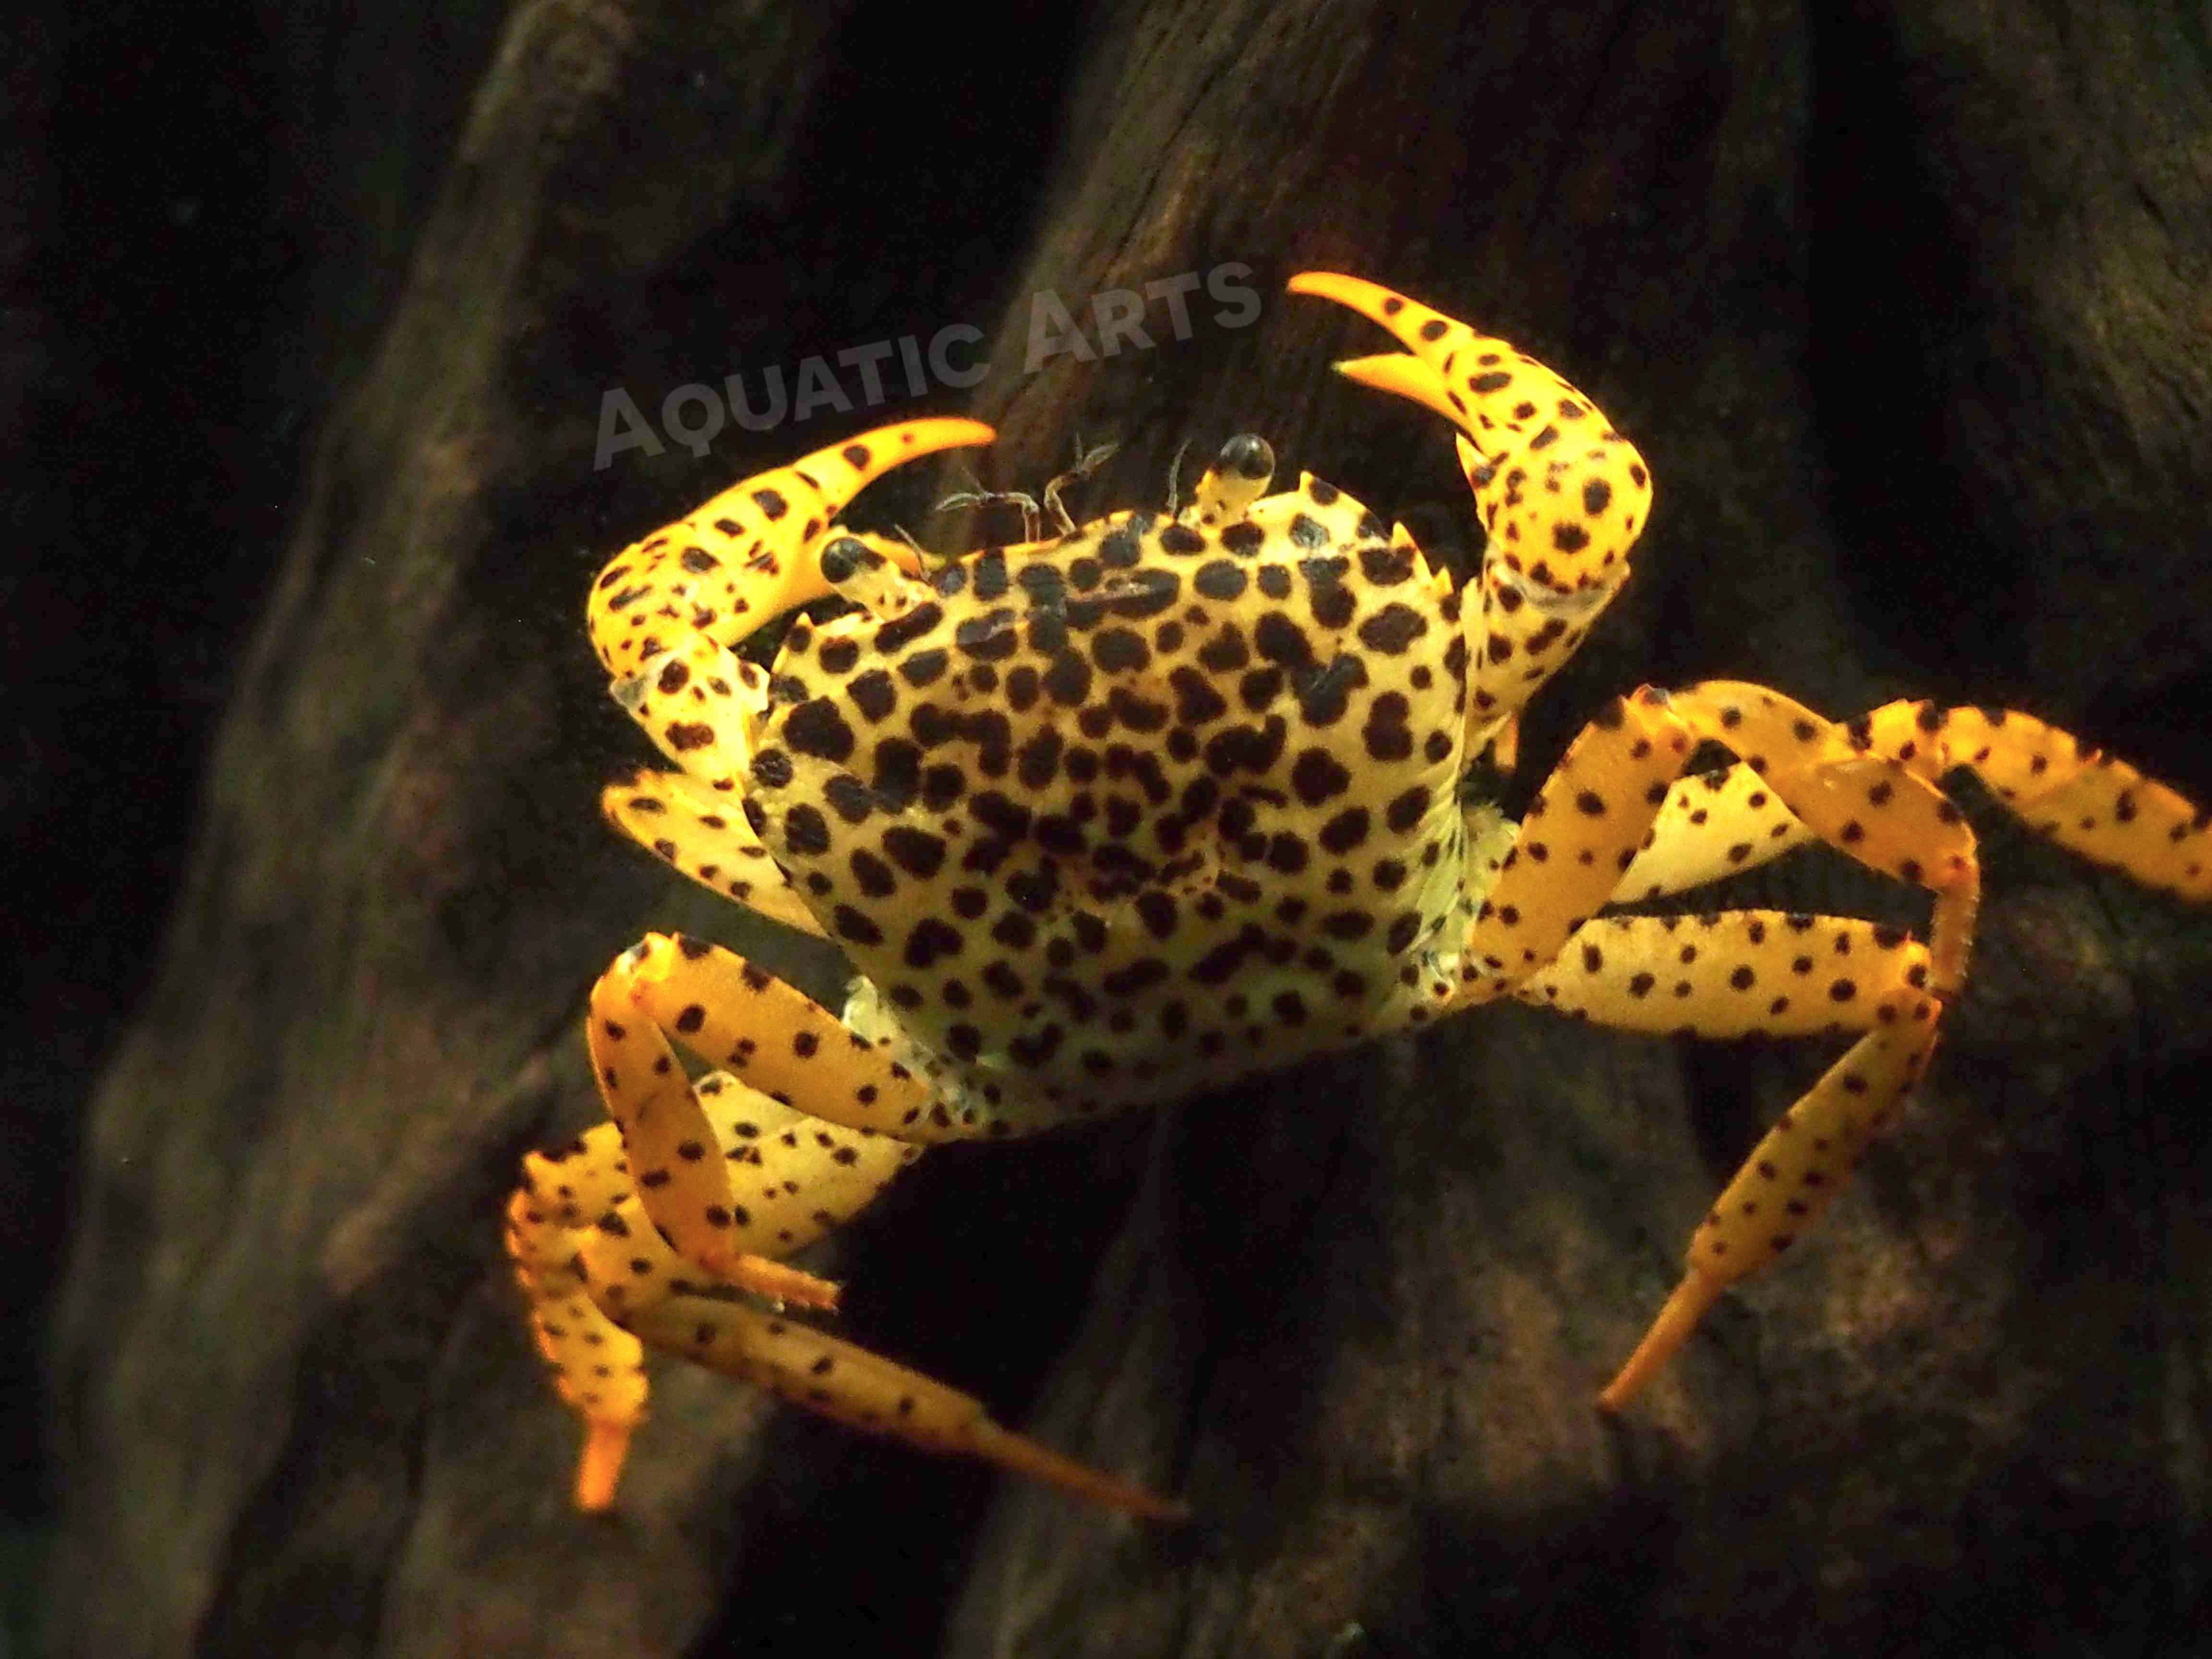 Freshwater aquarium fish for sale philippines - 1 Live Panther Crab Parathelphusa Pantherina Inch Juvenile Fully Aquatic Crayfish Alternative By Aquatic Arts